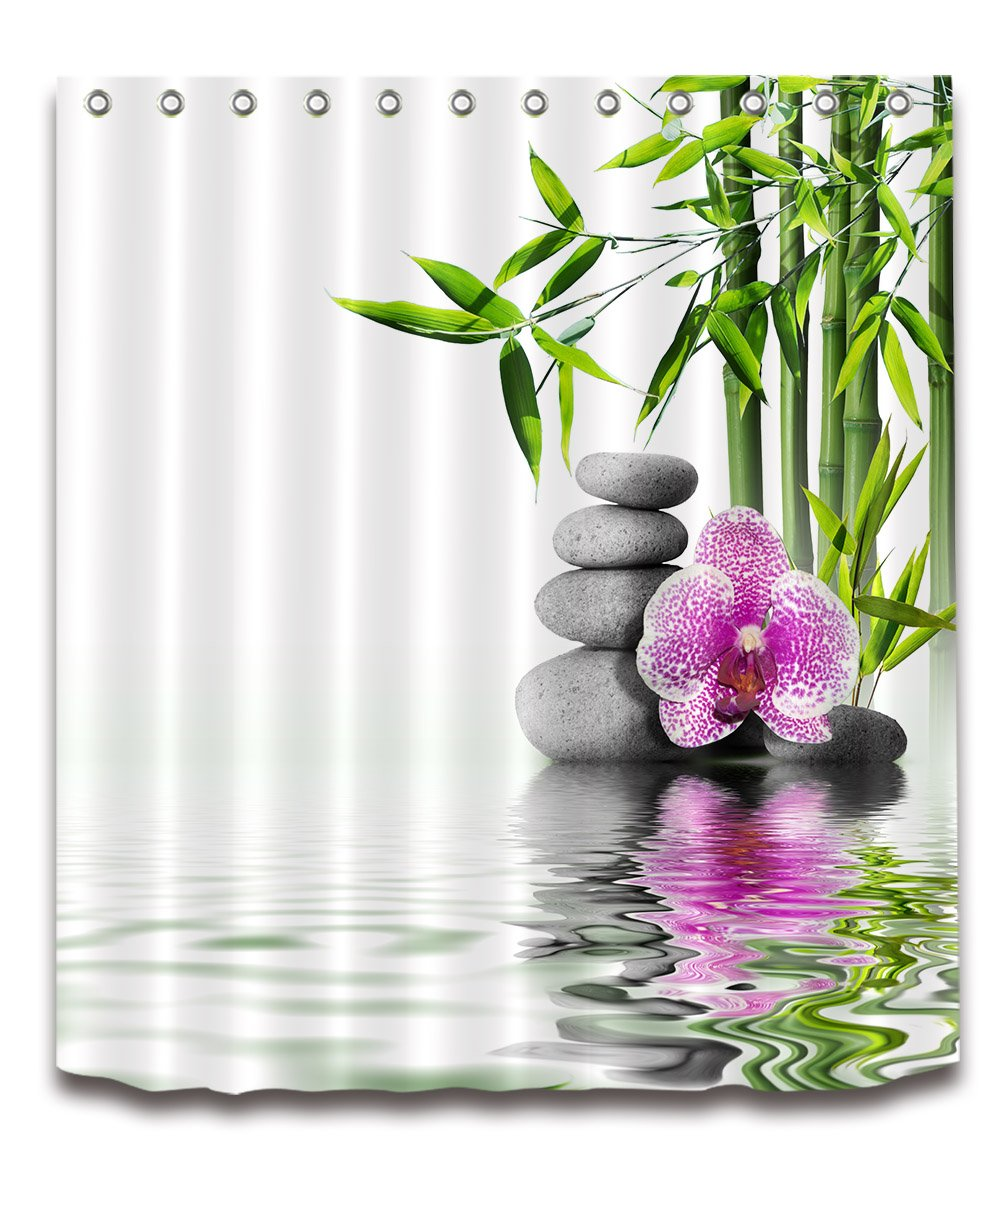 LB India Spa Zen Buddha Water Yoga Hot Spring Meditation Decoration Shower Curtain Polyester Fabric 3D 72x72 inch Mildew Resistant Waterproof Massage Stone Orchid Bathroom Bath Curtains by LB (Image #1)